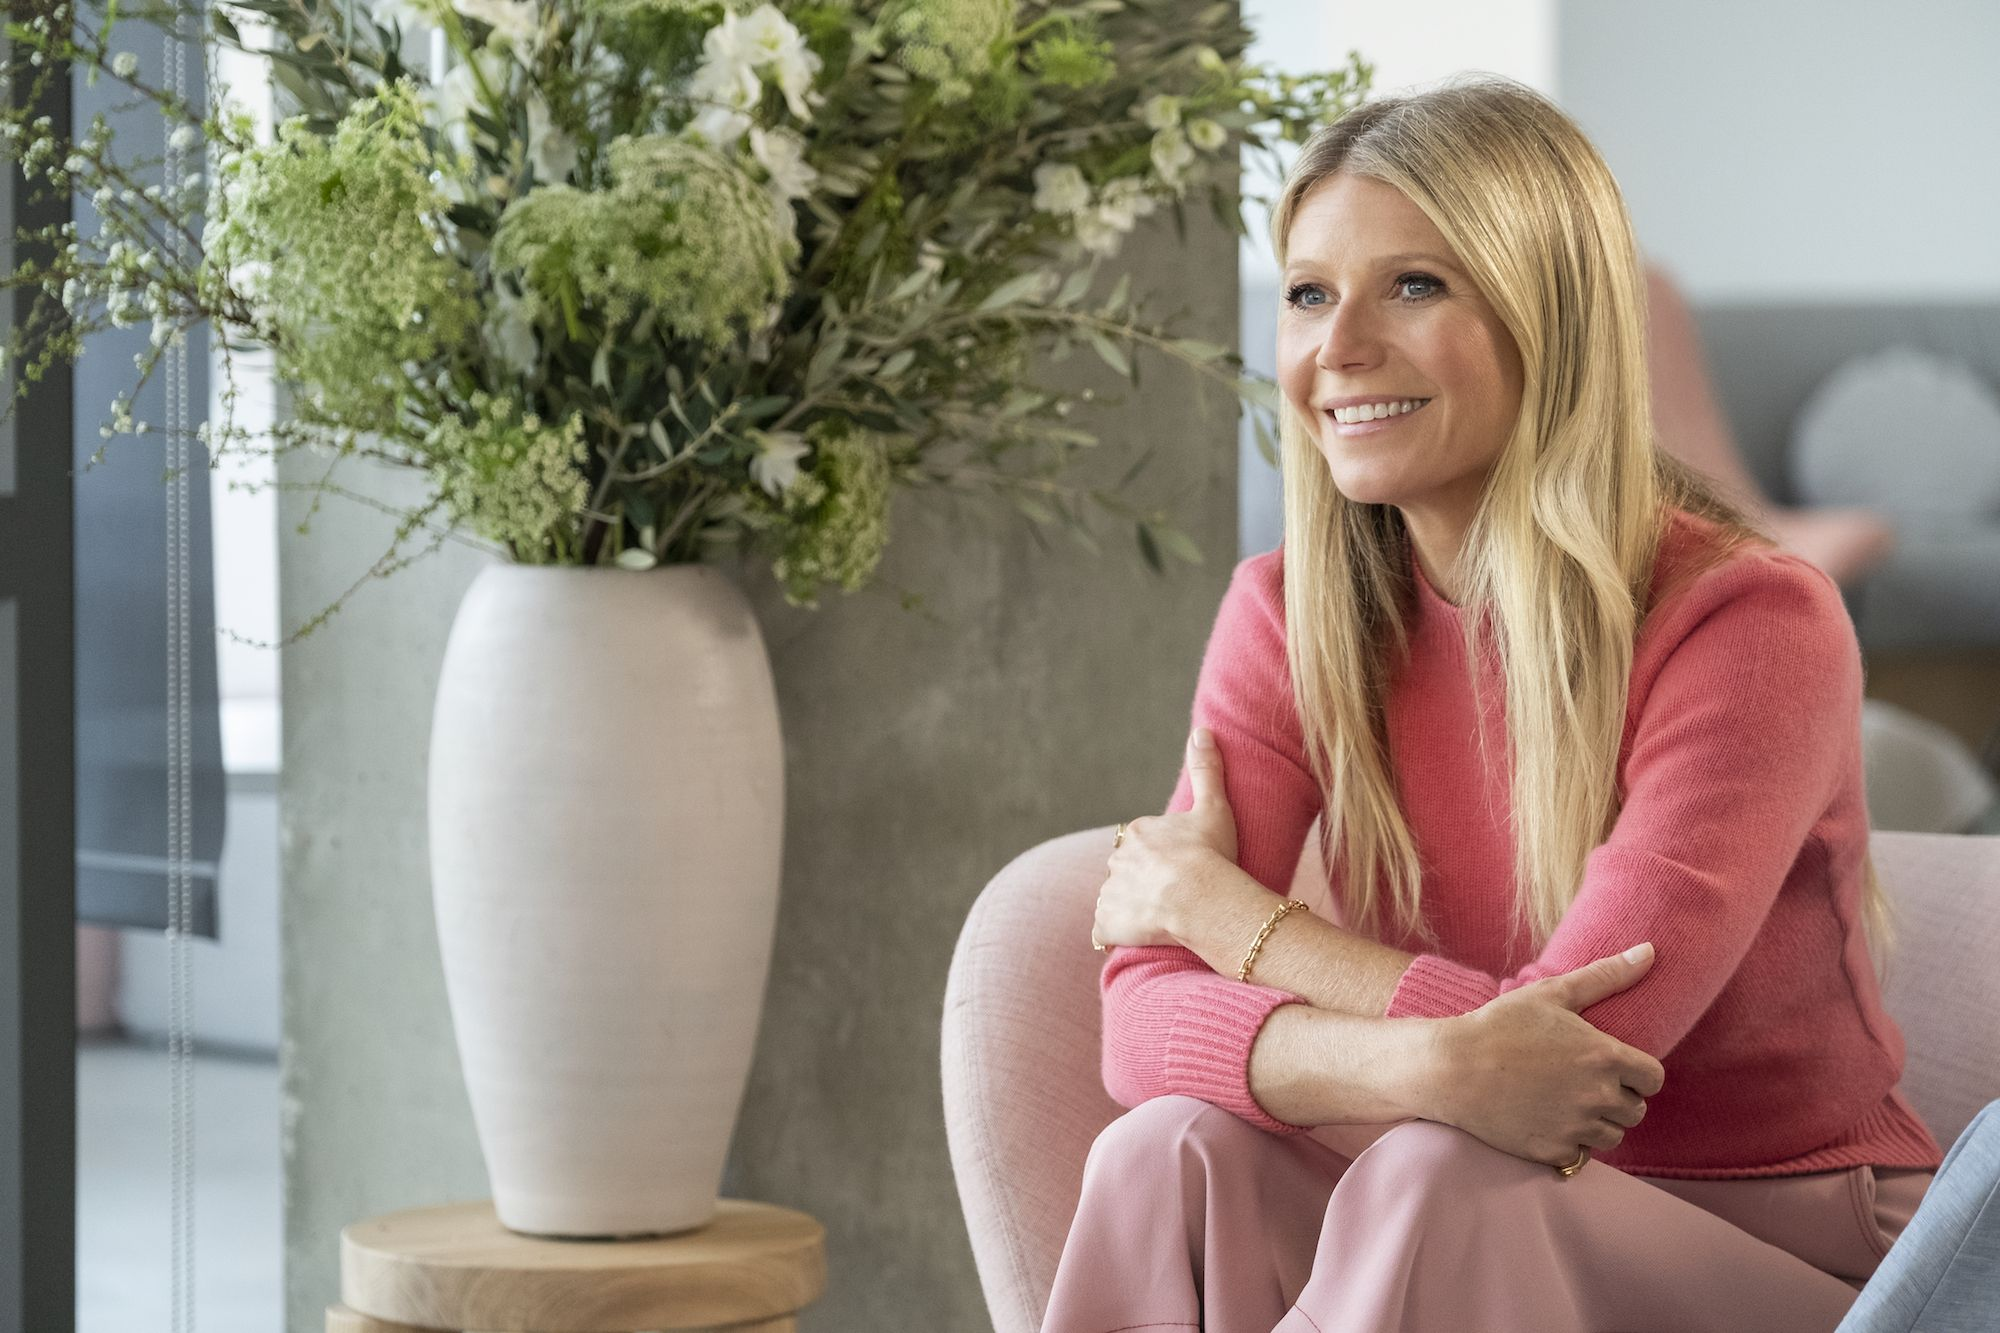 Gwyneth Paltrow's Most Controversial Goop Moments Over the Years